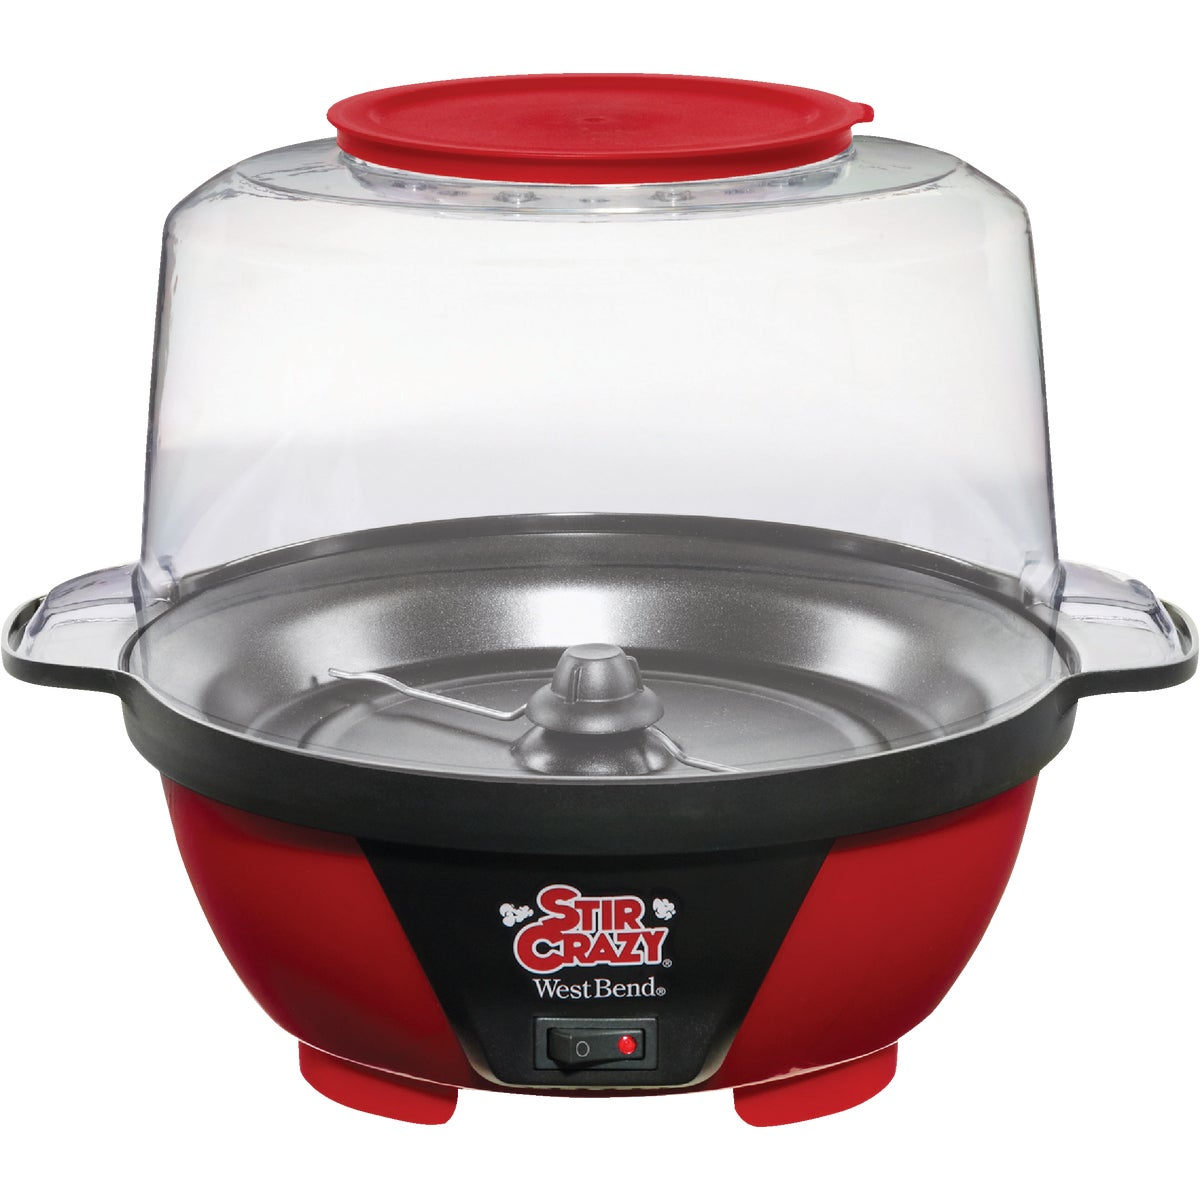 6 QUART POPCORN POPPER - 82306 by Focus Electrics Llc